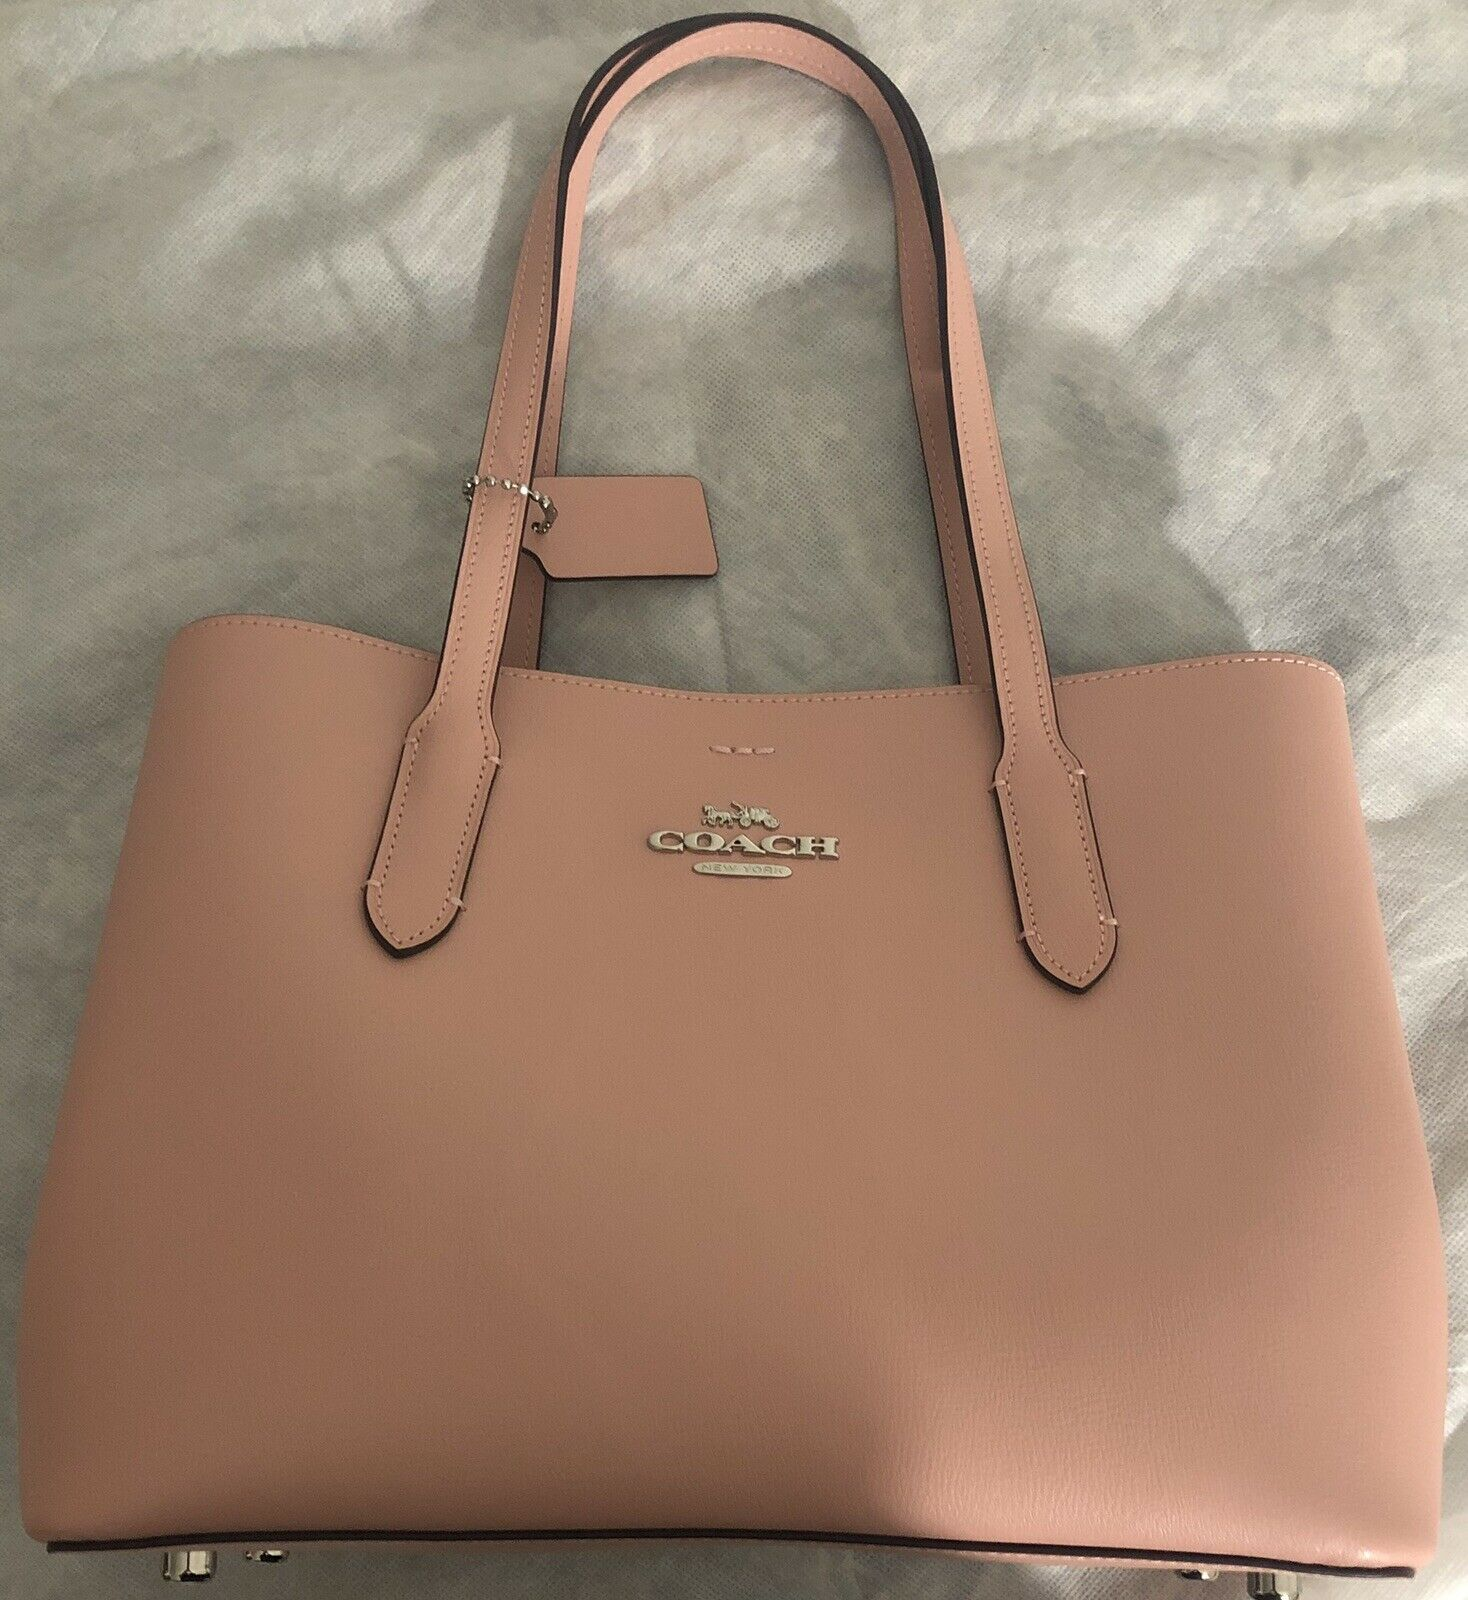 60b9d32698 New Women's Coach F48733 Leather Avenue CarryAll Satchel/Tote Hand ...